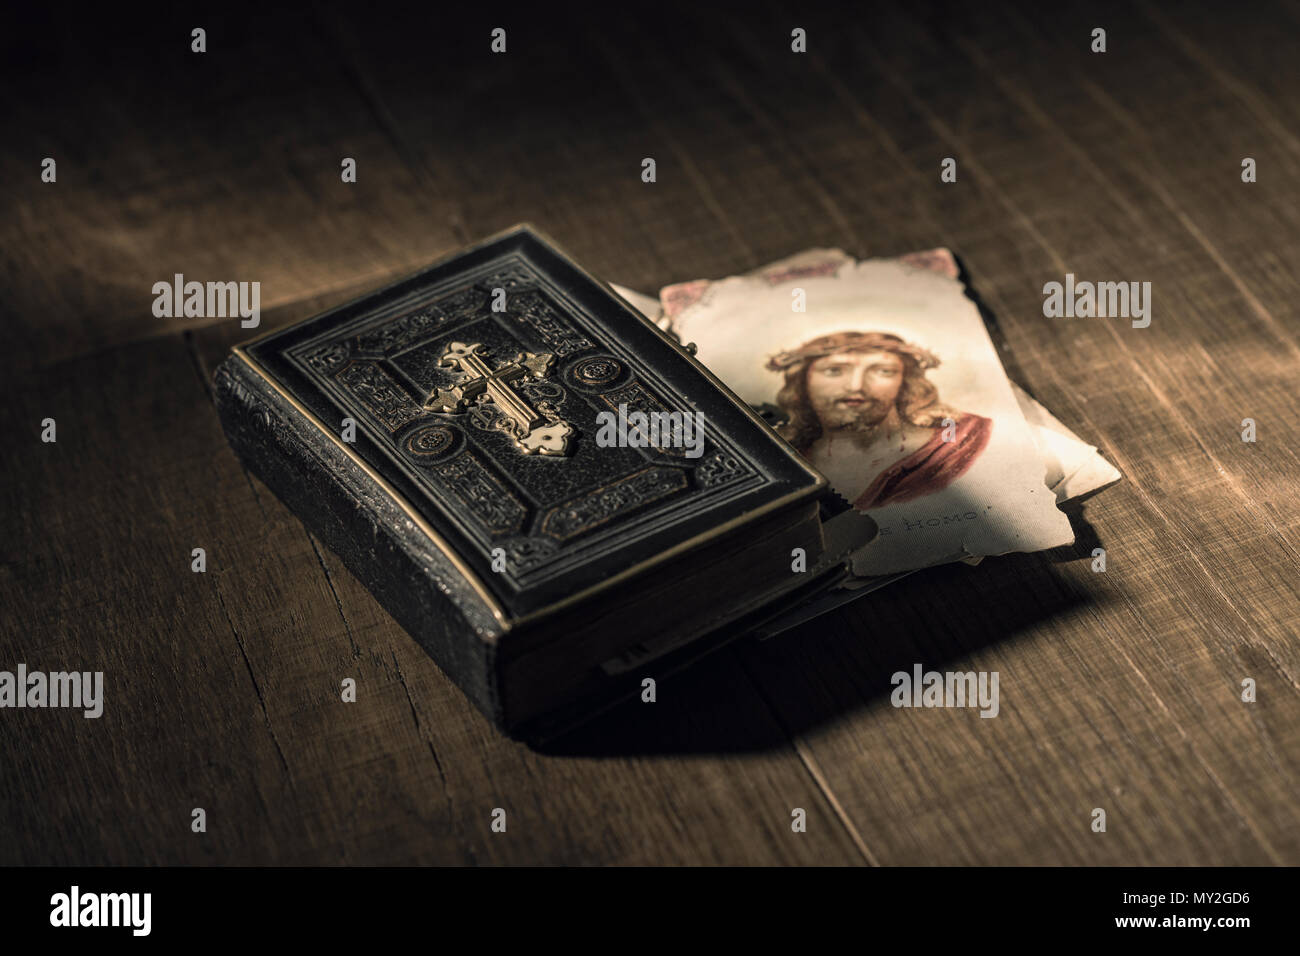 Sacred bible and Holy card with Jesus Christ image on a wooden desk, religion and faith concept - Stock Image